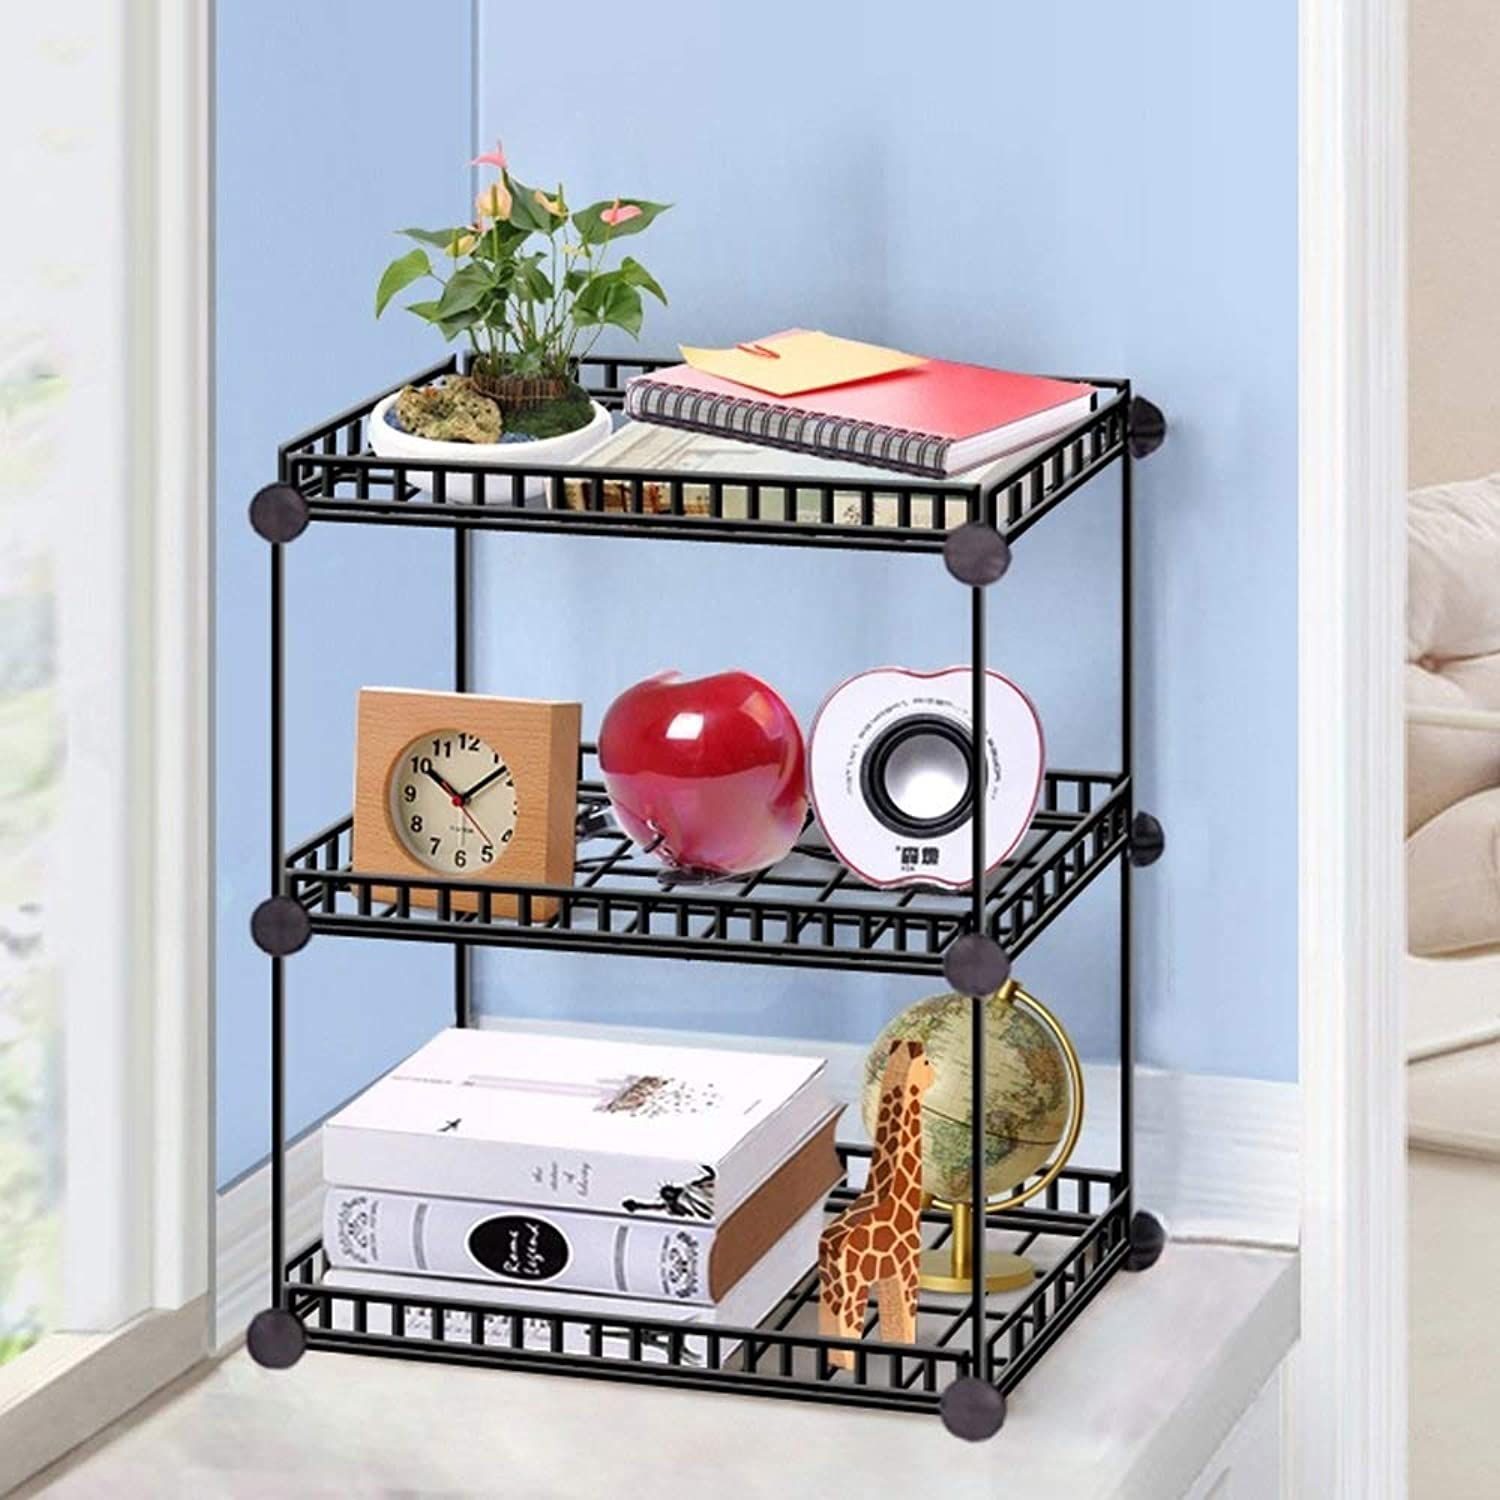 JSSCL Iron net Creative Study Finishing Storage Rack, Table Small Bookshelf Fleshy Shelf Rack (Size   S)